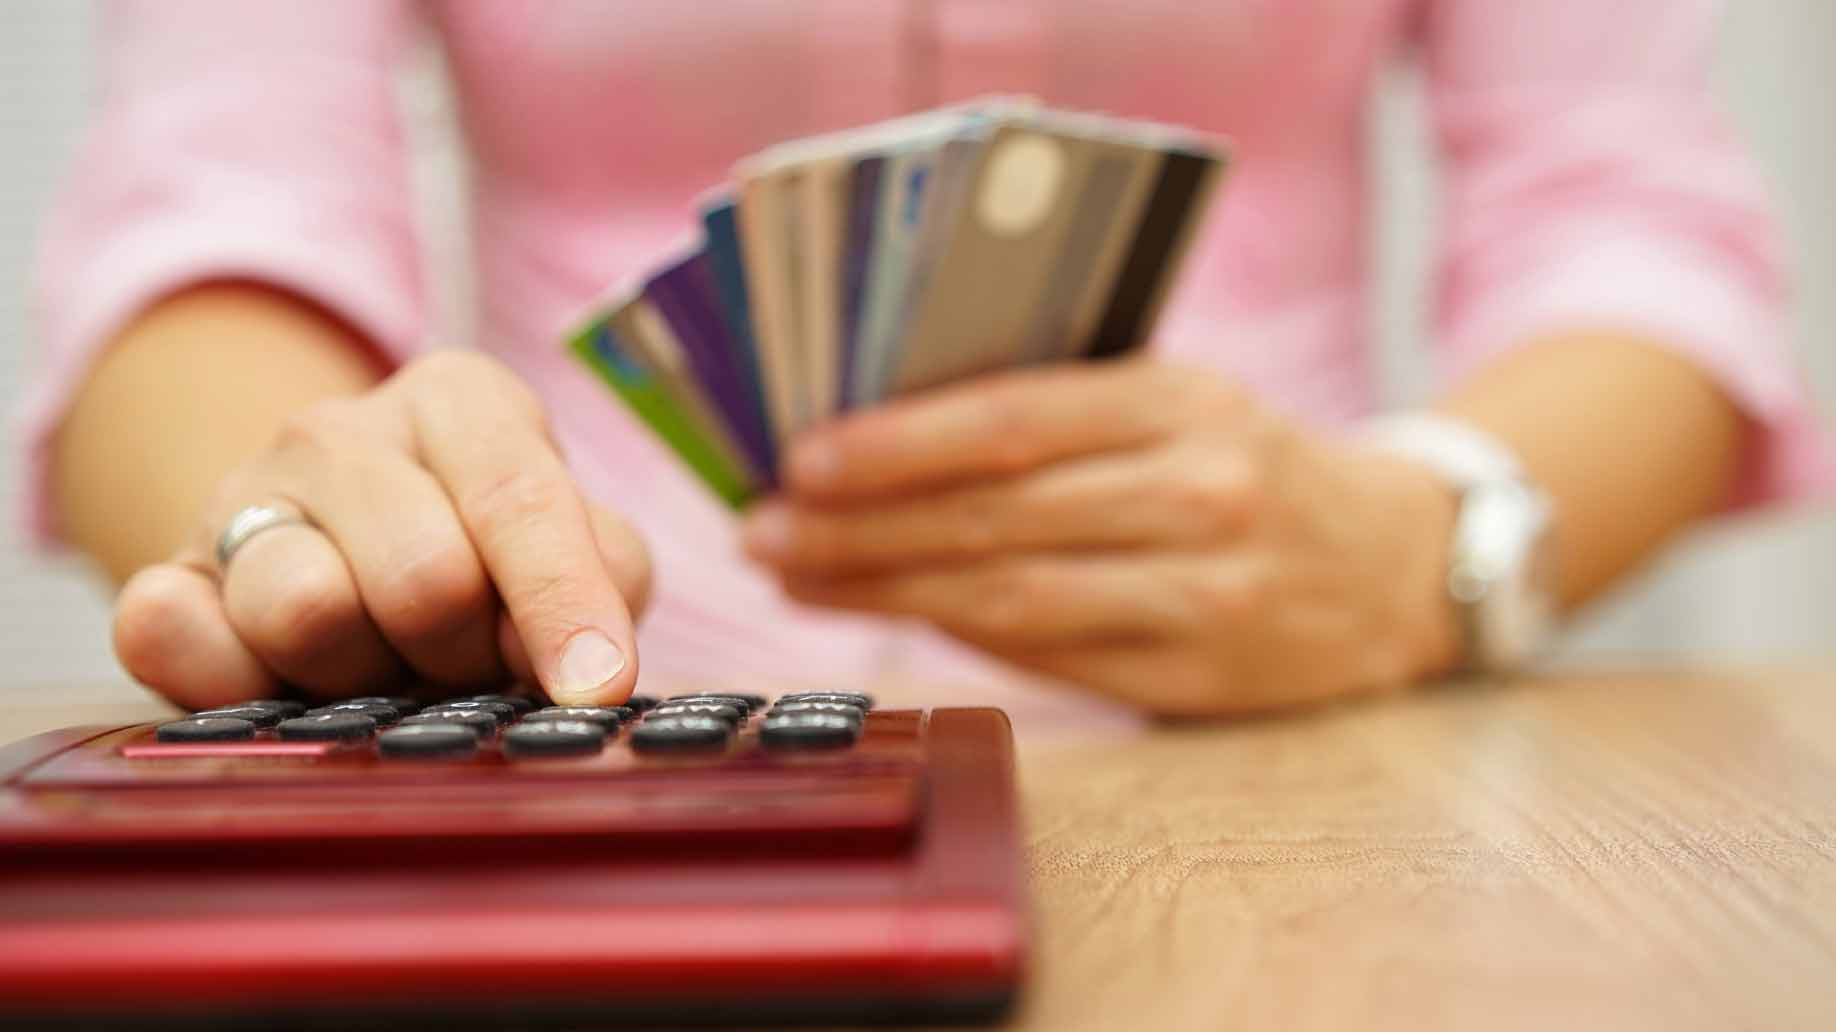 credit cards can help with record keeping